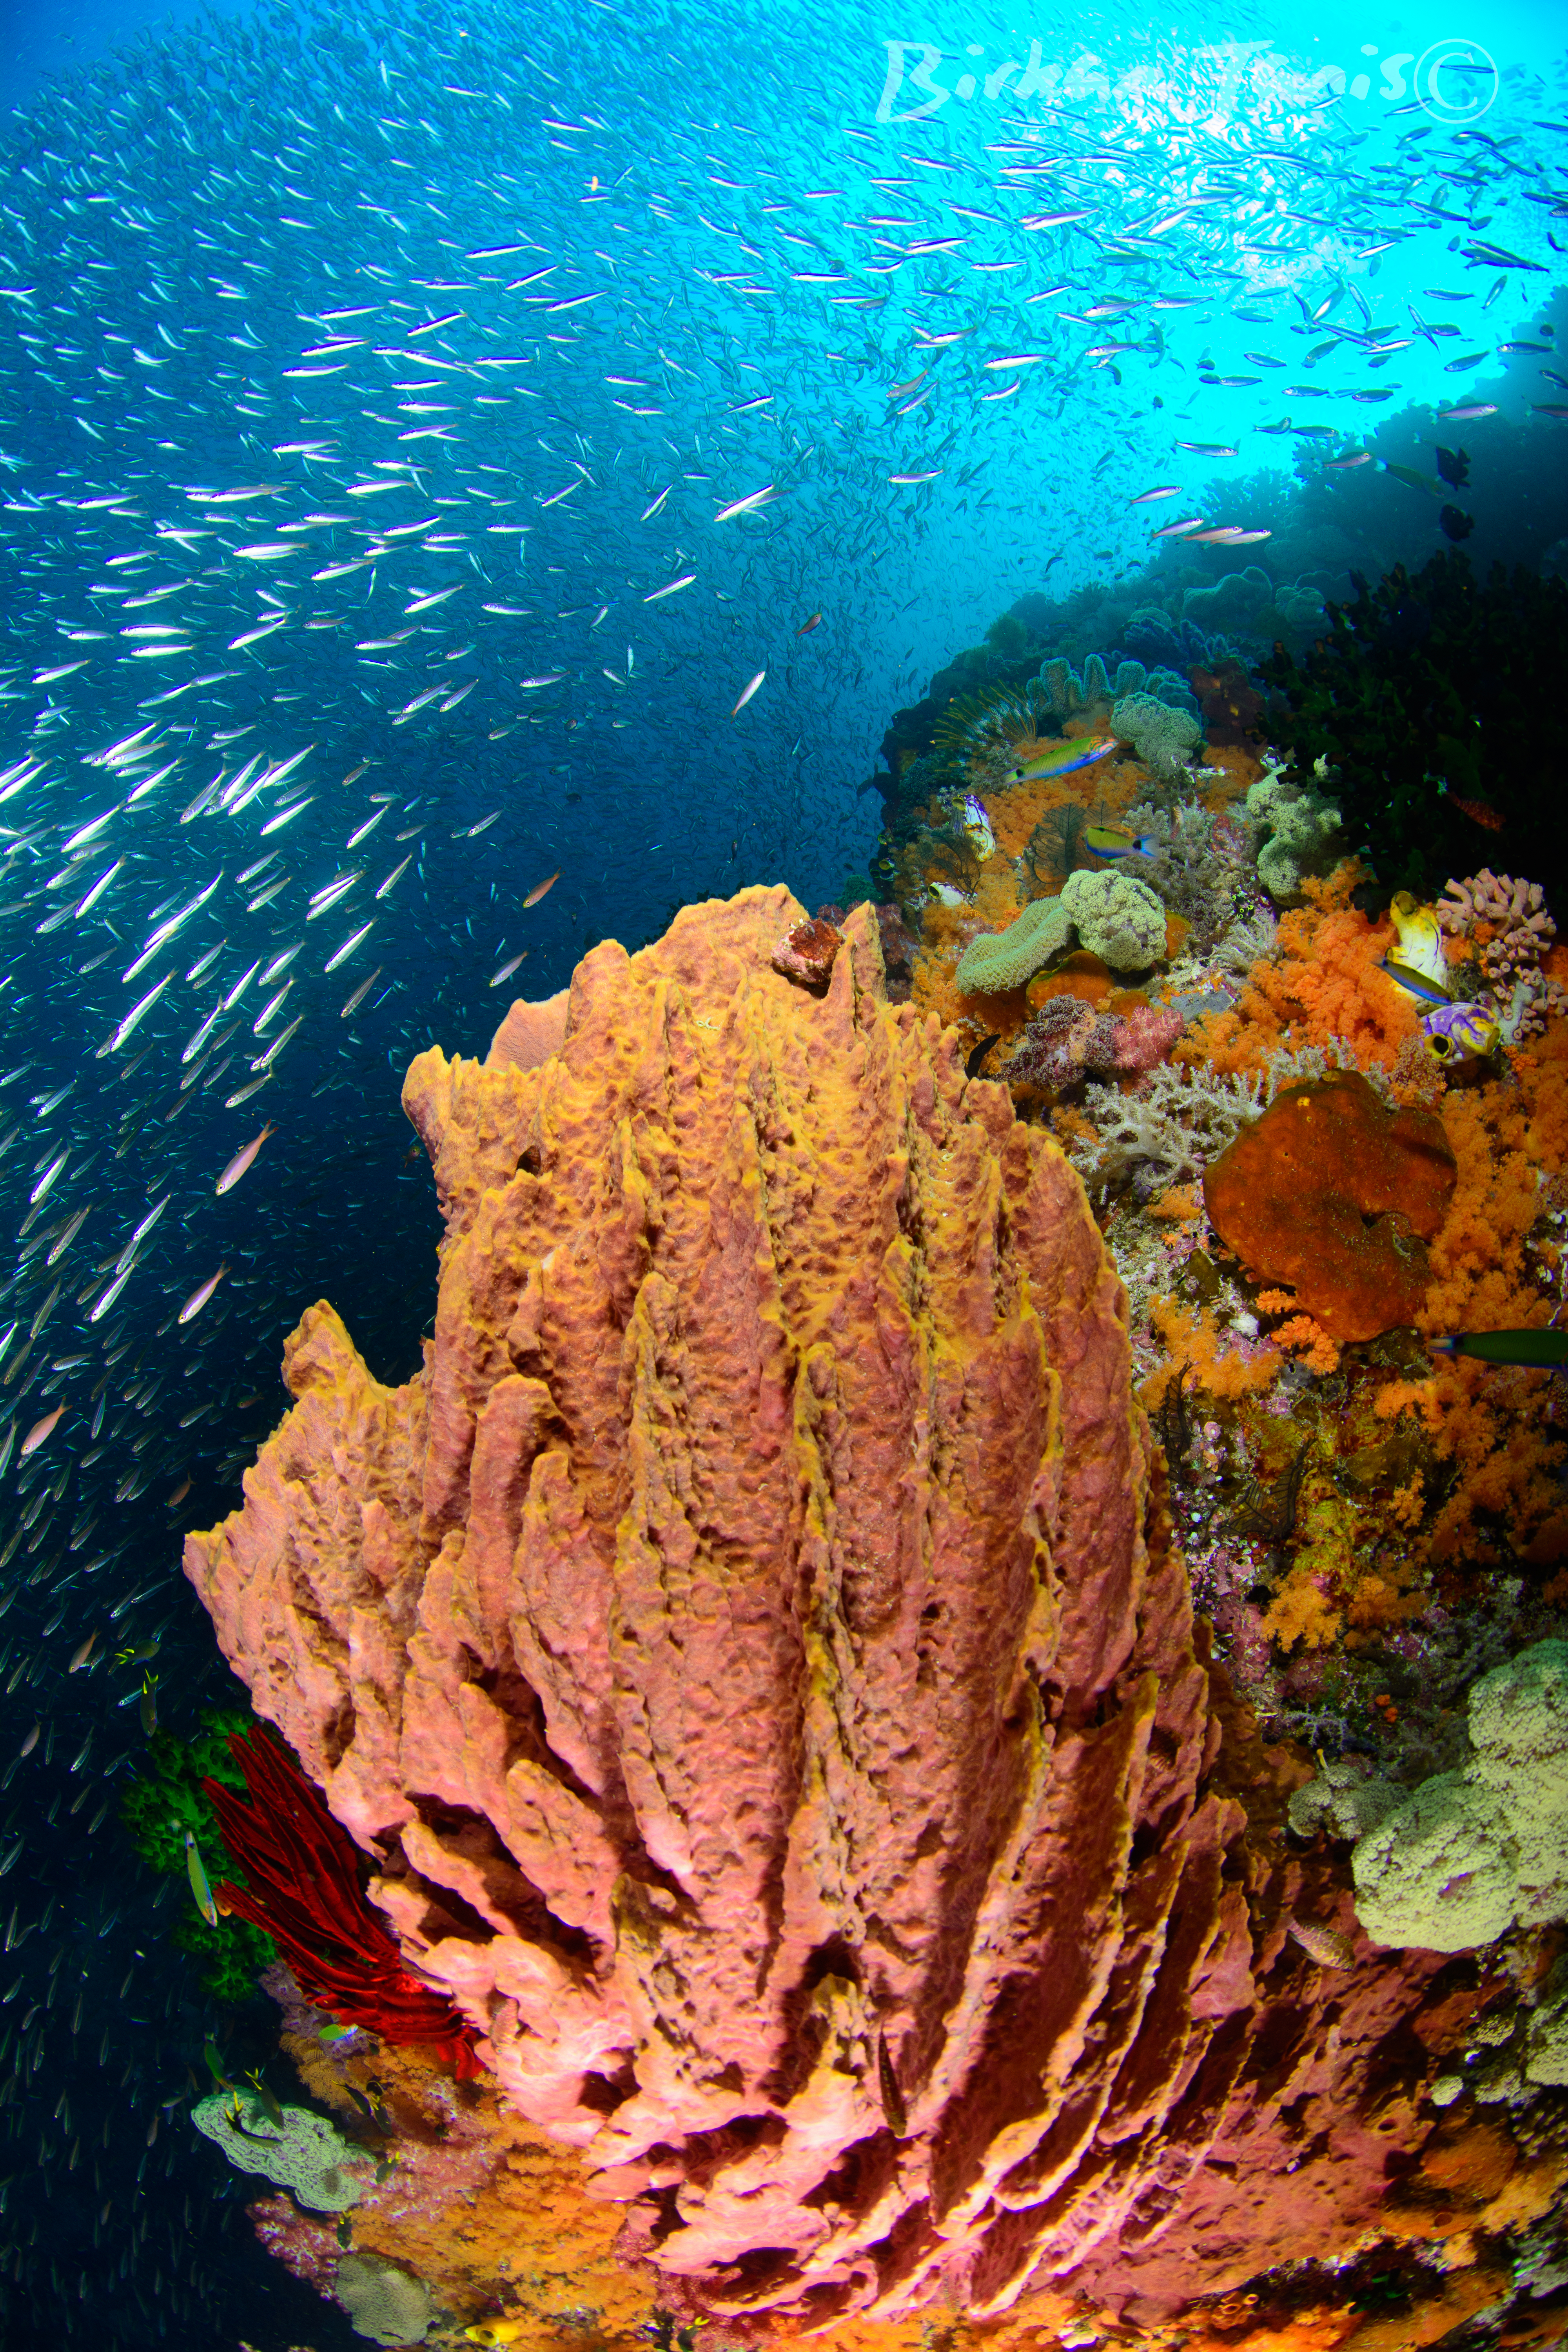 Coral-reef-fish-indonesia-sponges